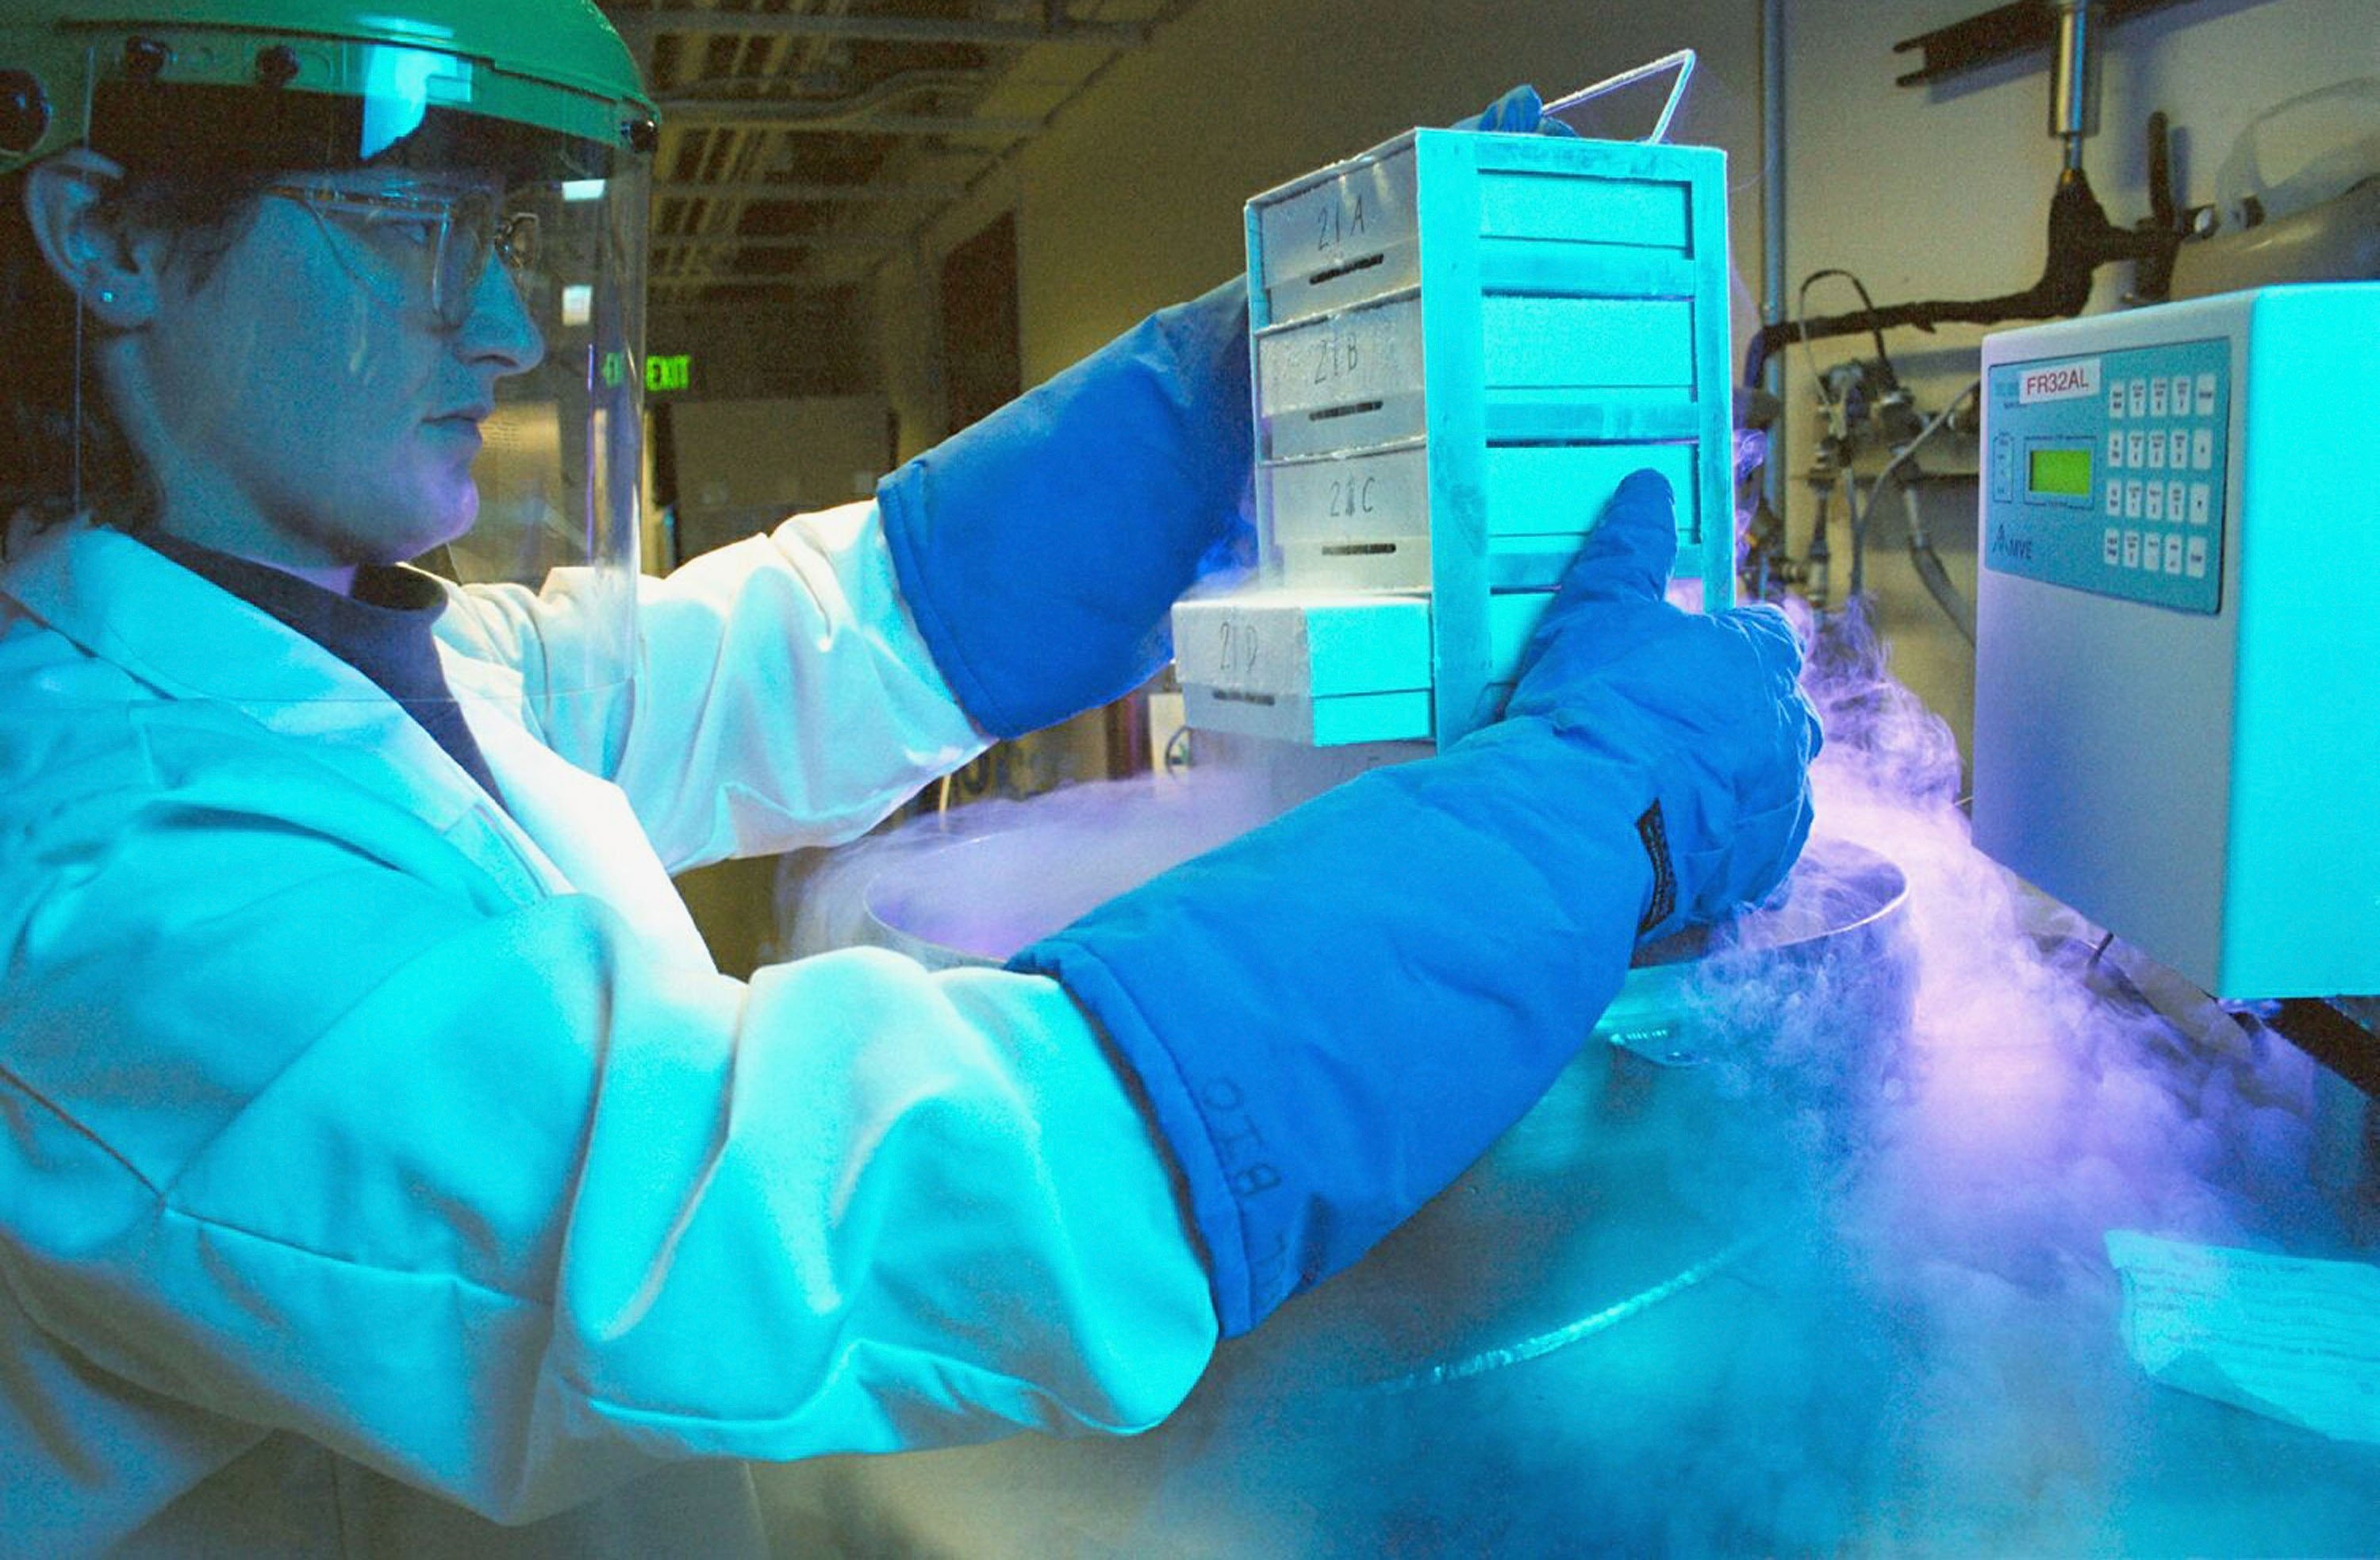 In this undated handout photo from Schering AG, a technician withdraws deep-frozen cells for in-vitro culturing at a laboratory of German pharmaceutical giant Schering. According to news reports March 13 German drug company Merck has launched a 14.6 billion Euros hostile takeover bid for Schering.